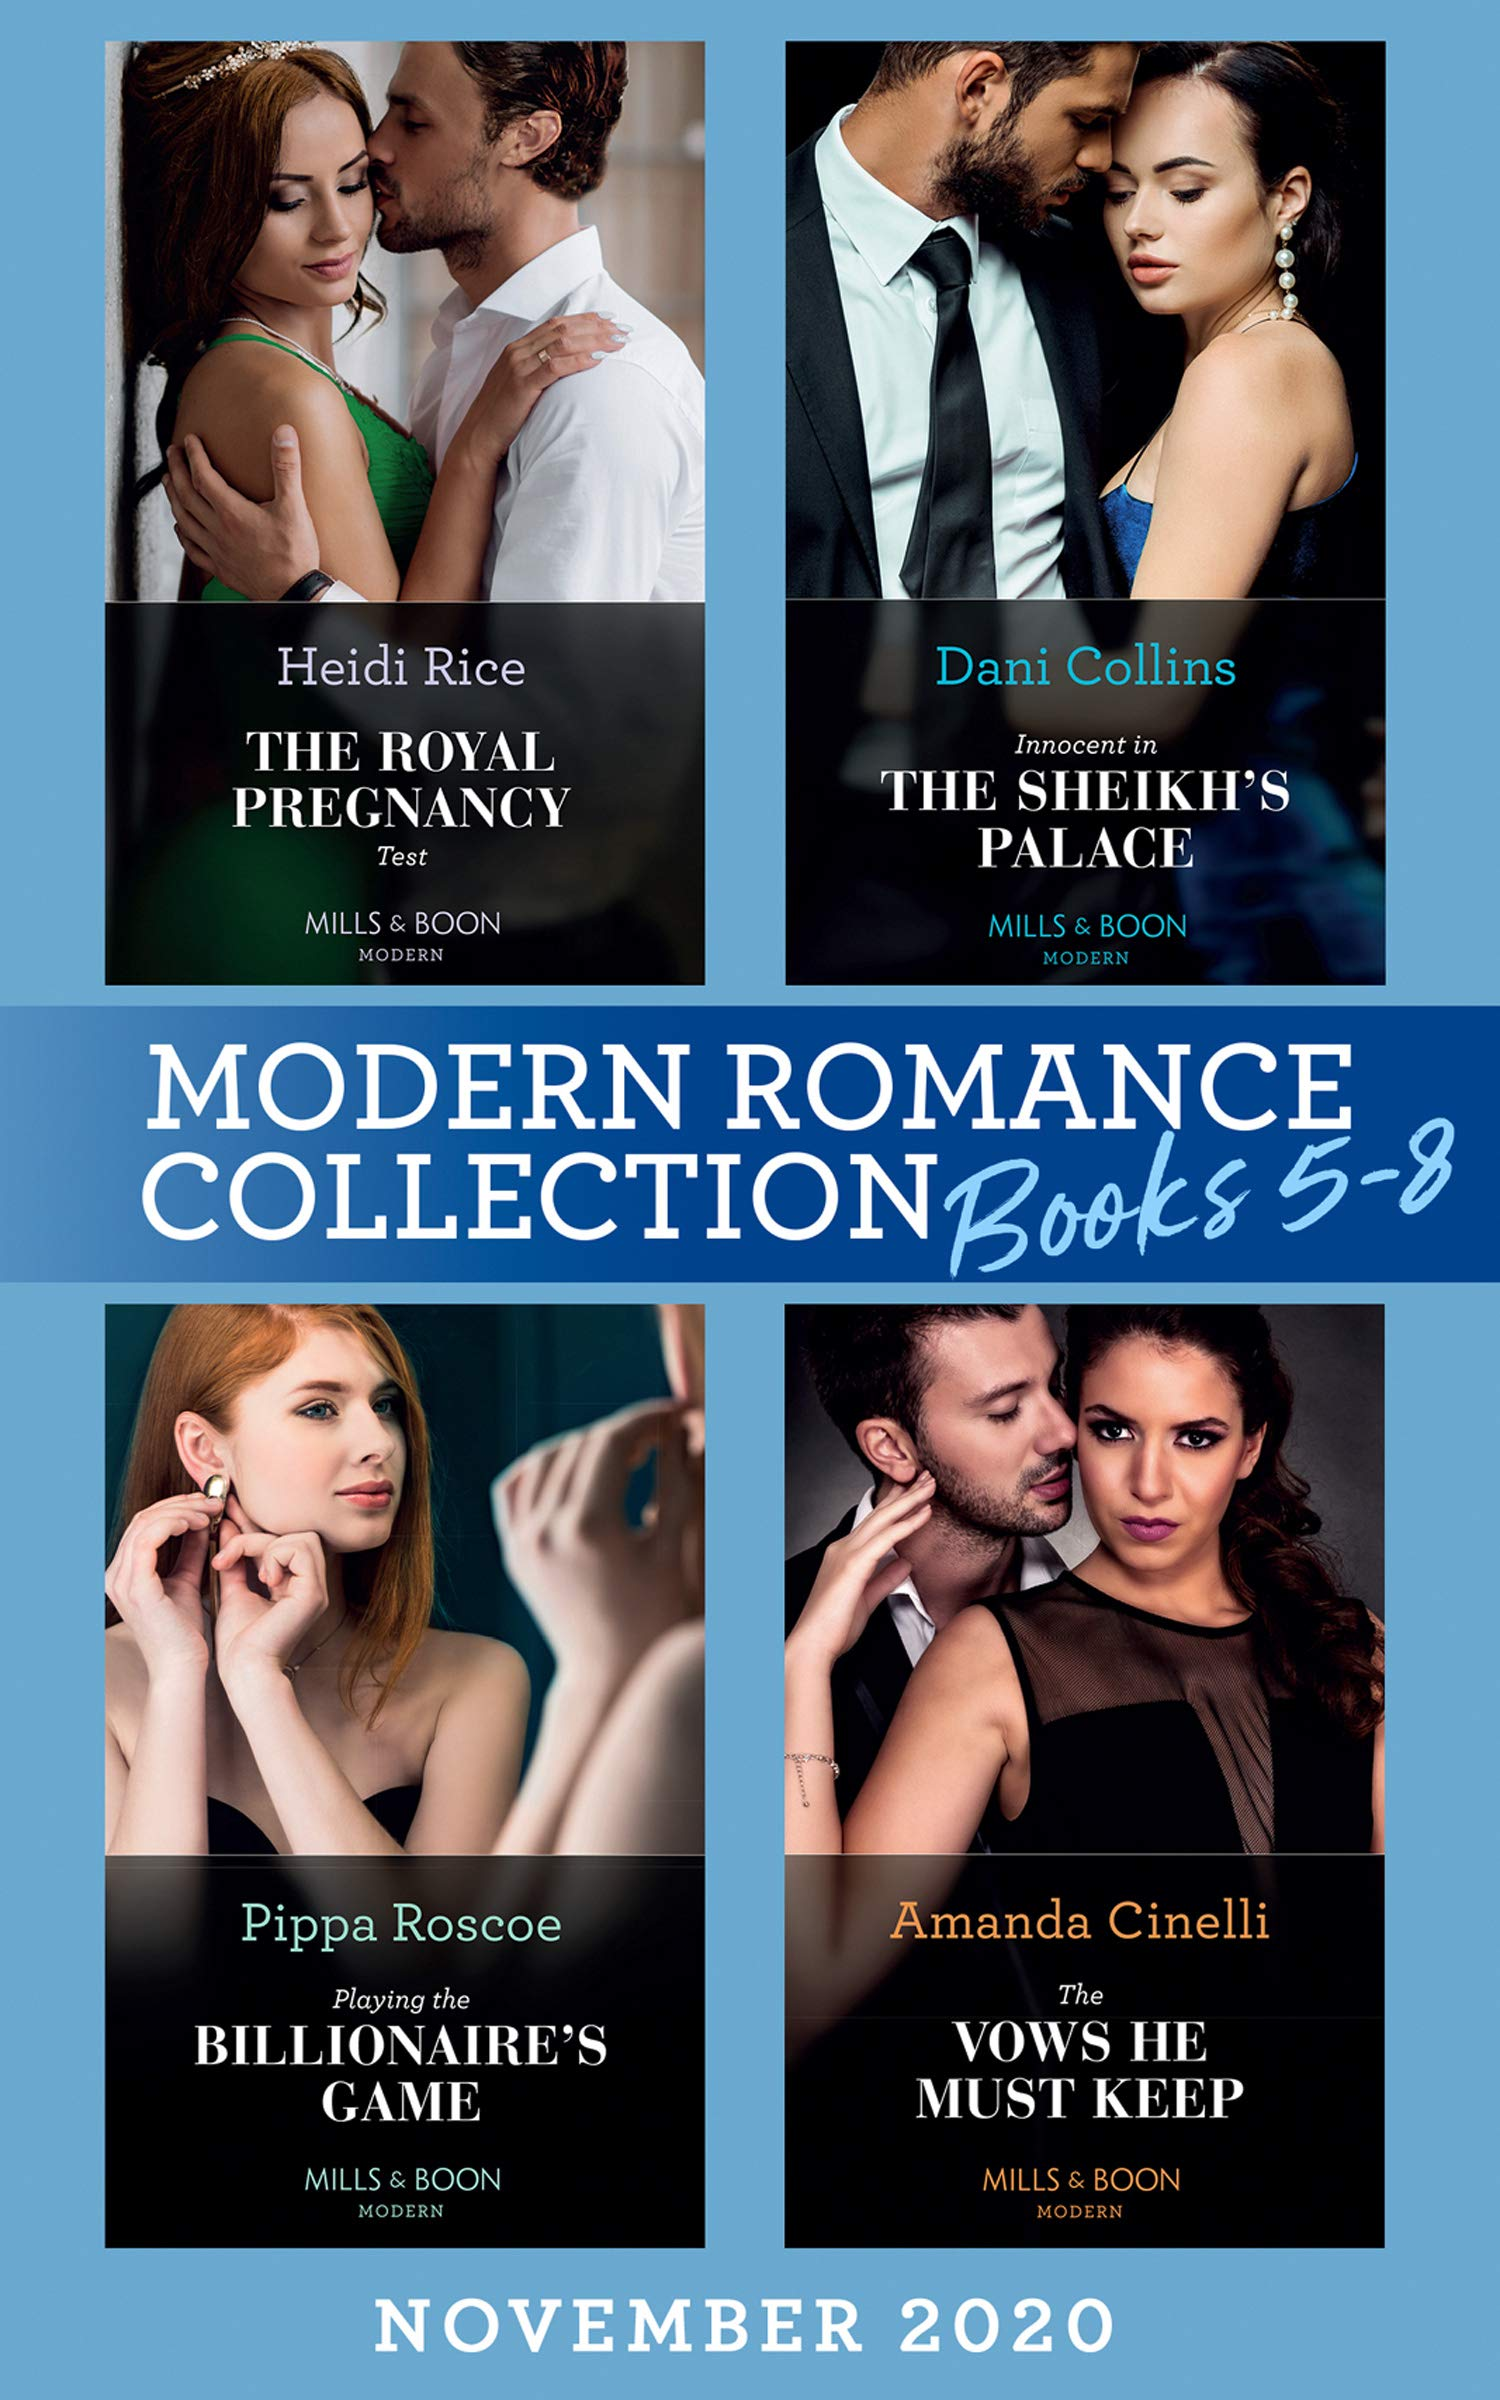 Modern Romance November 2020 Books 5-8: The Royal Pregnancy Test (The Christmas Princess Swap) / Innocent in the Sheikh's Palace / Playing the Billionaire's Game / The Vows He Must Keep